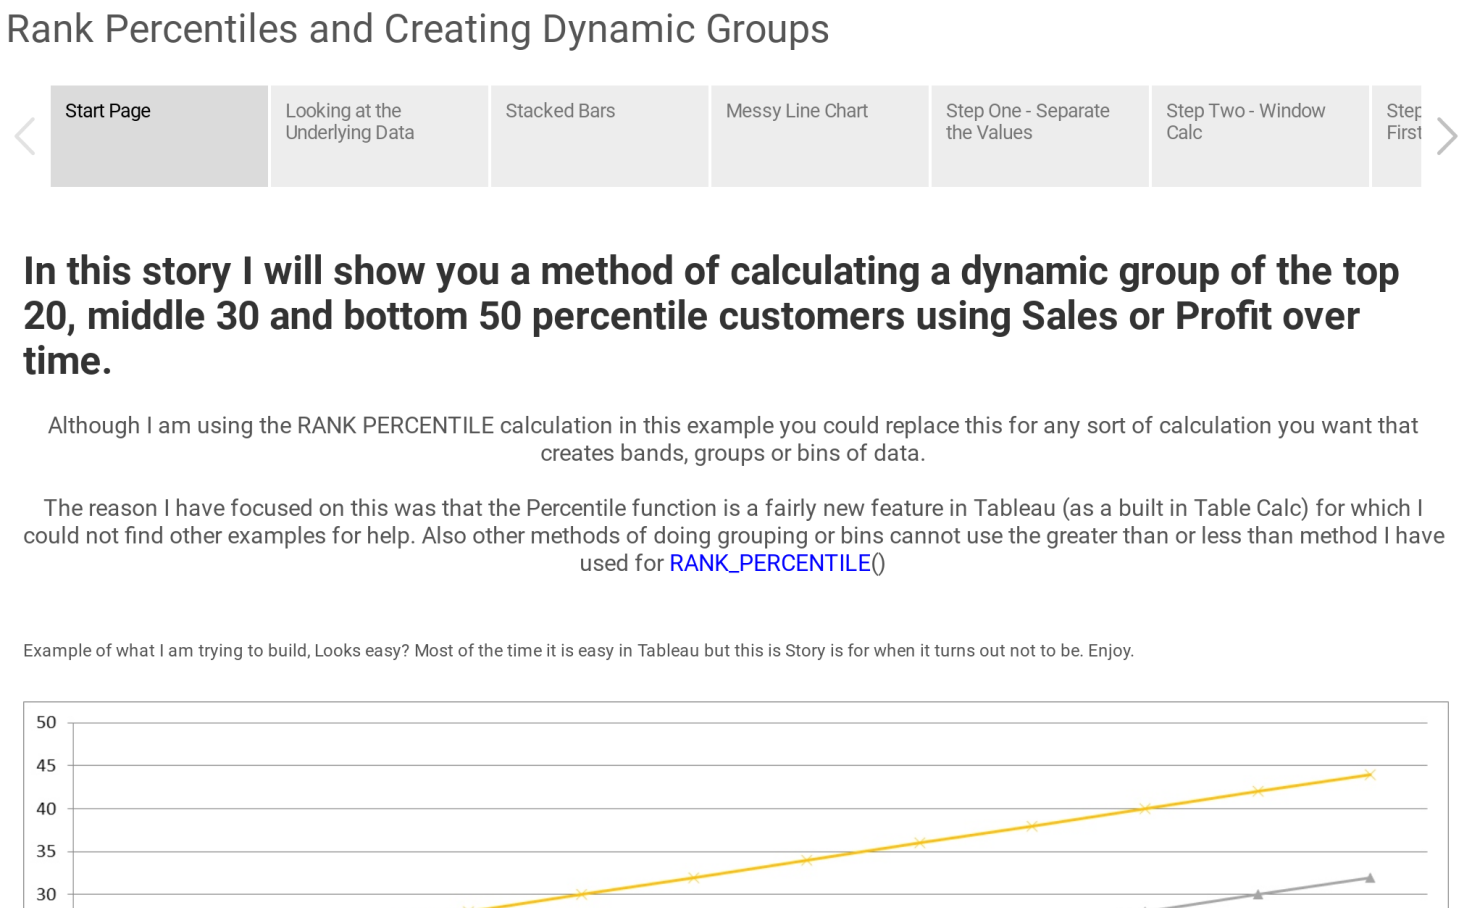 Rank Percentiles and Creating Dynamic Groups - Chris Mace | Tableau